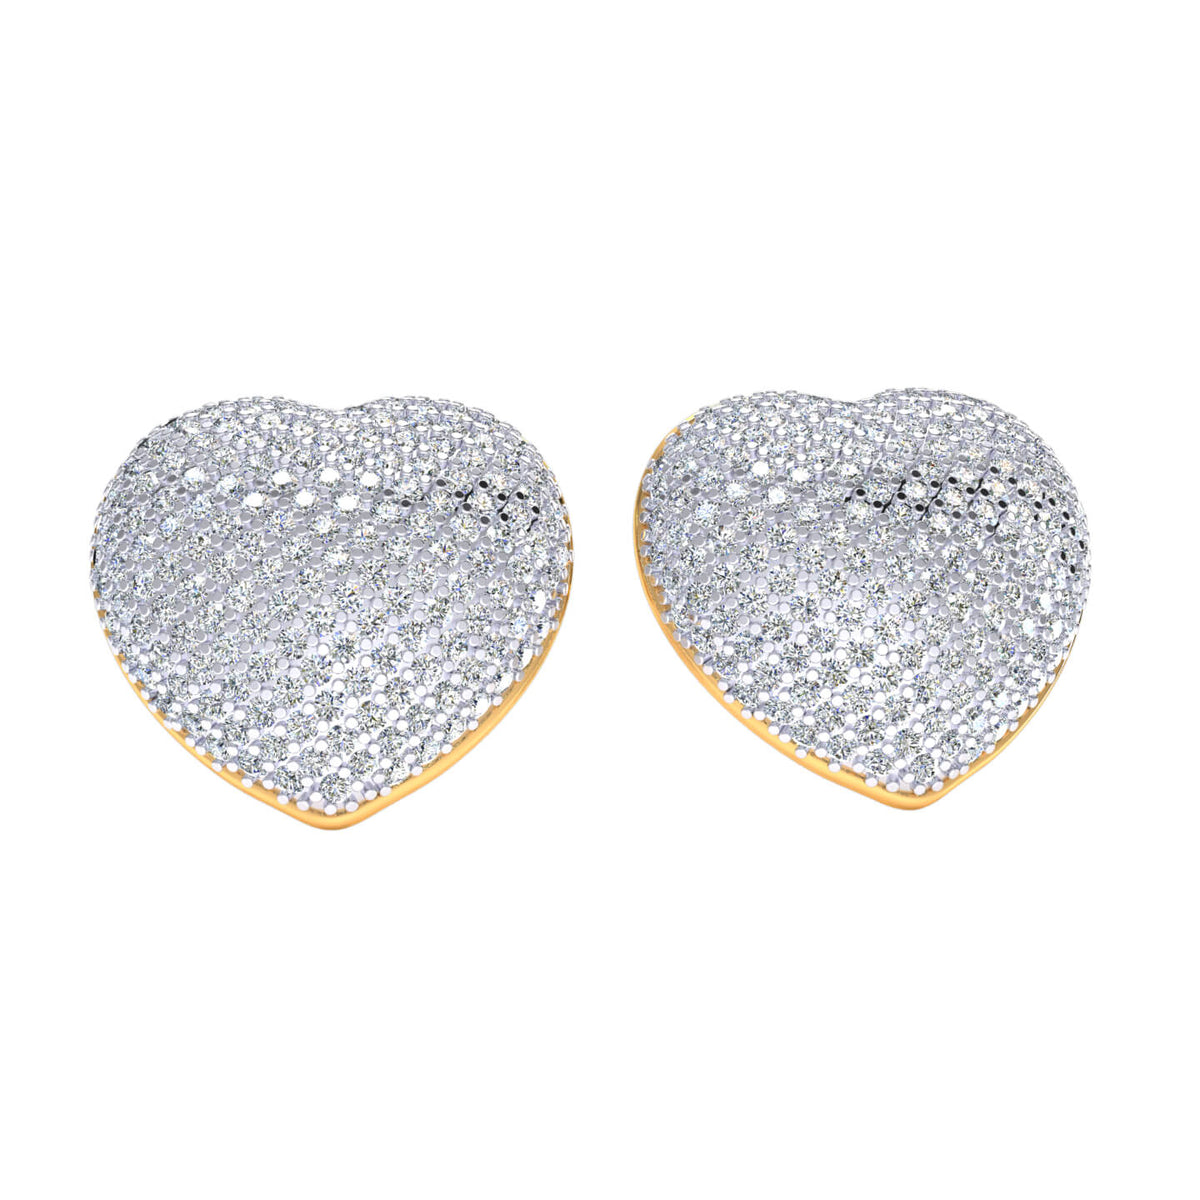 1.50 Ct Heart Round GH I1-I2 Diamond Stud Earrings For Adults 925 Sterling Silver